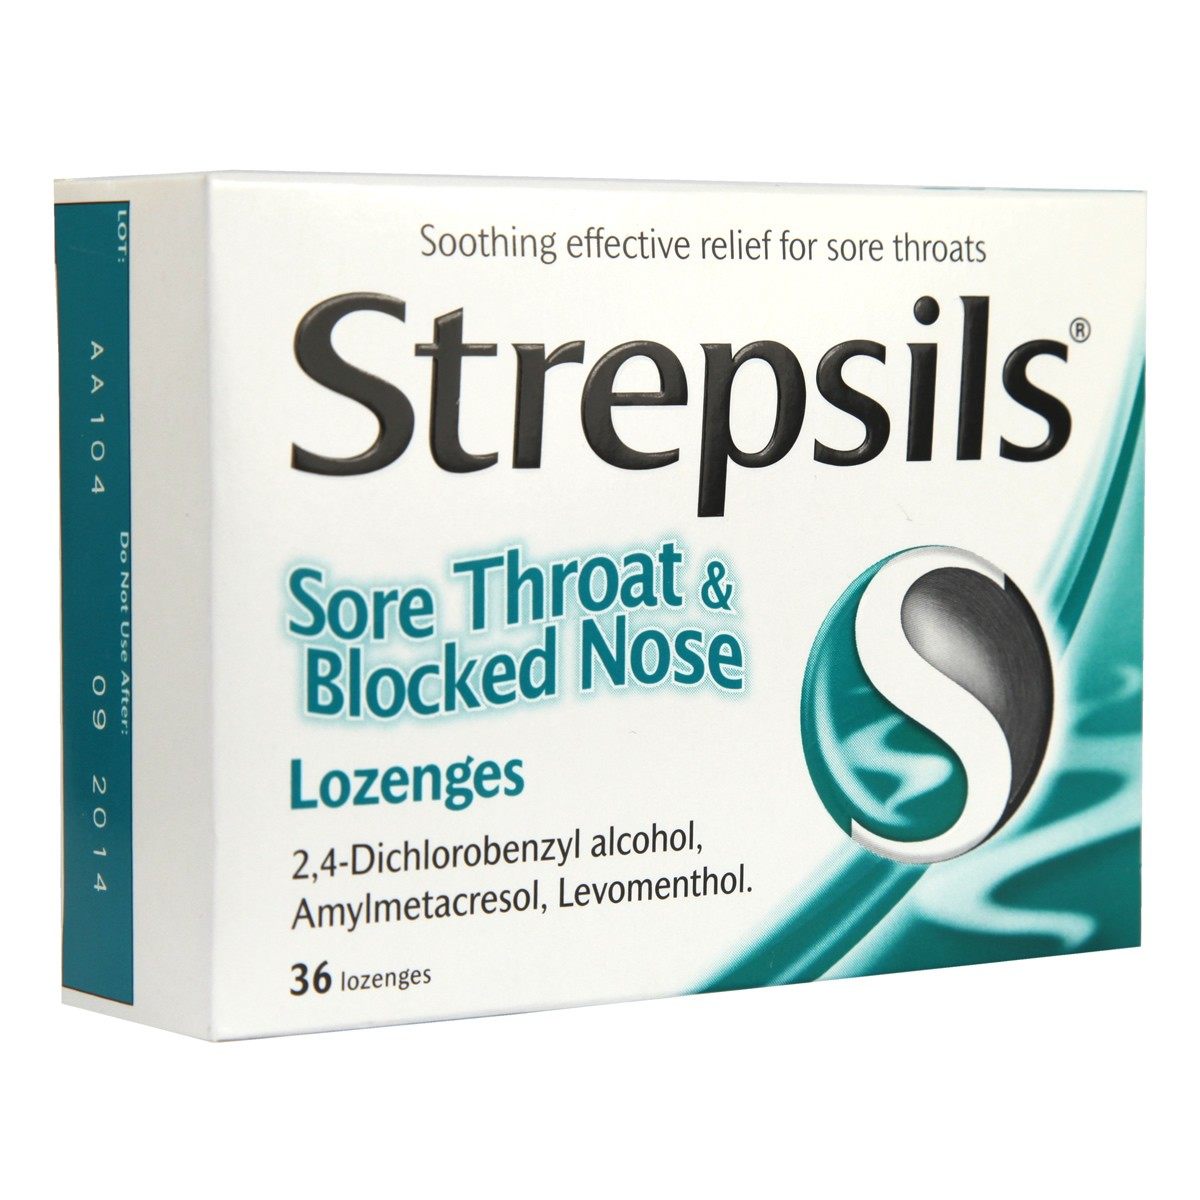 Strepsils Sore Throat & Blocked Nose